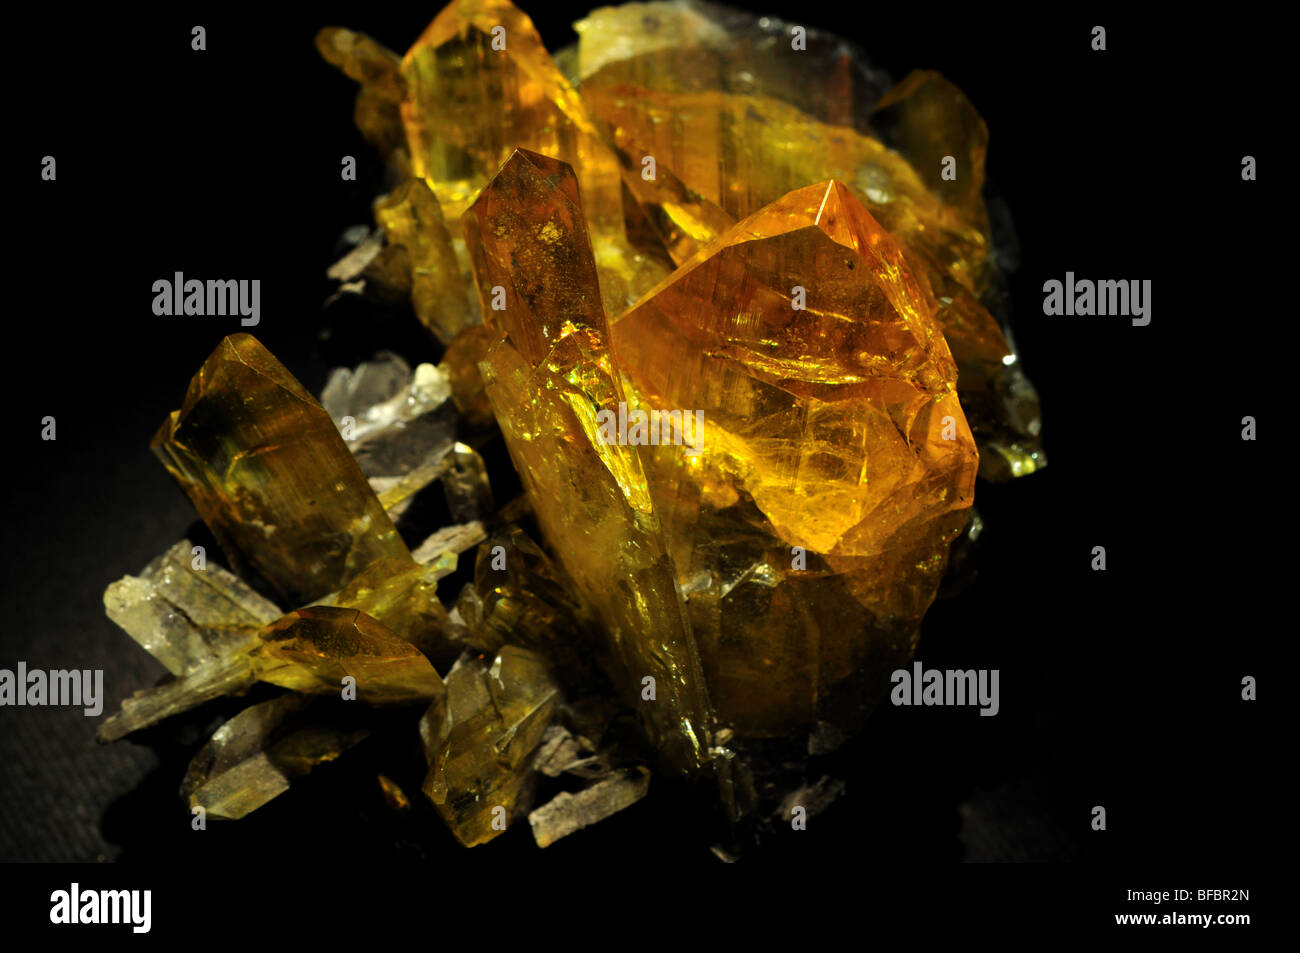 Yellow crystals of Anglesite, a lead sulfate mineral PbSO4. - Stock Image